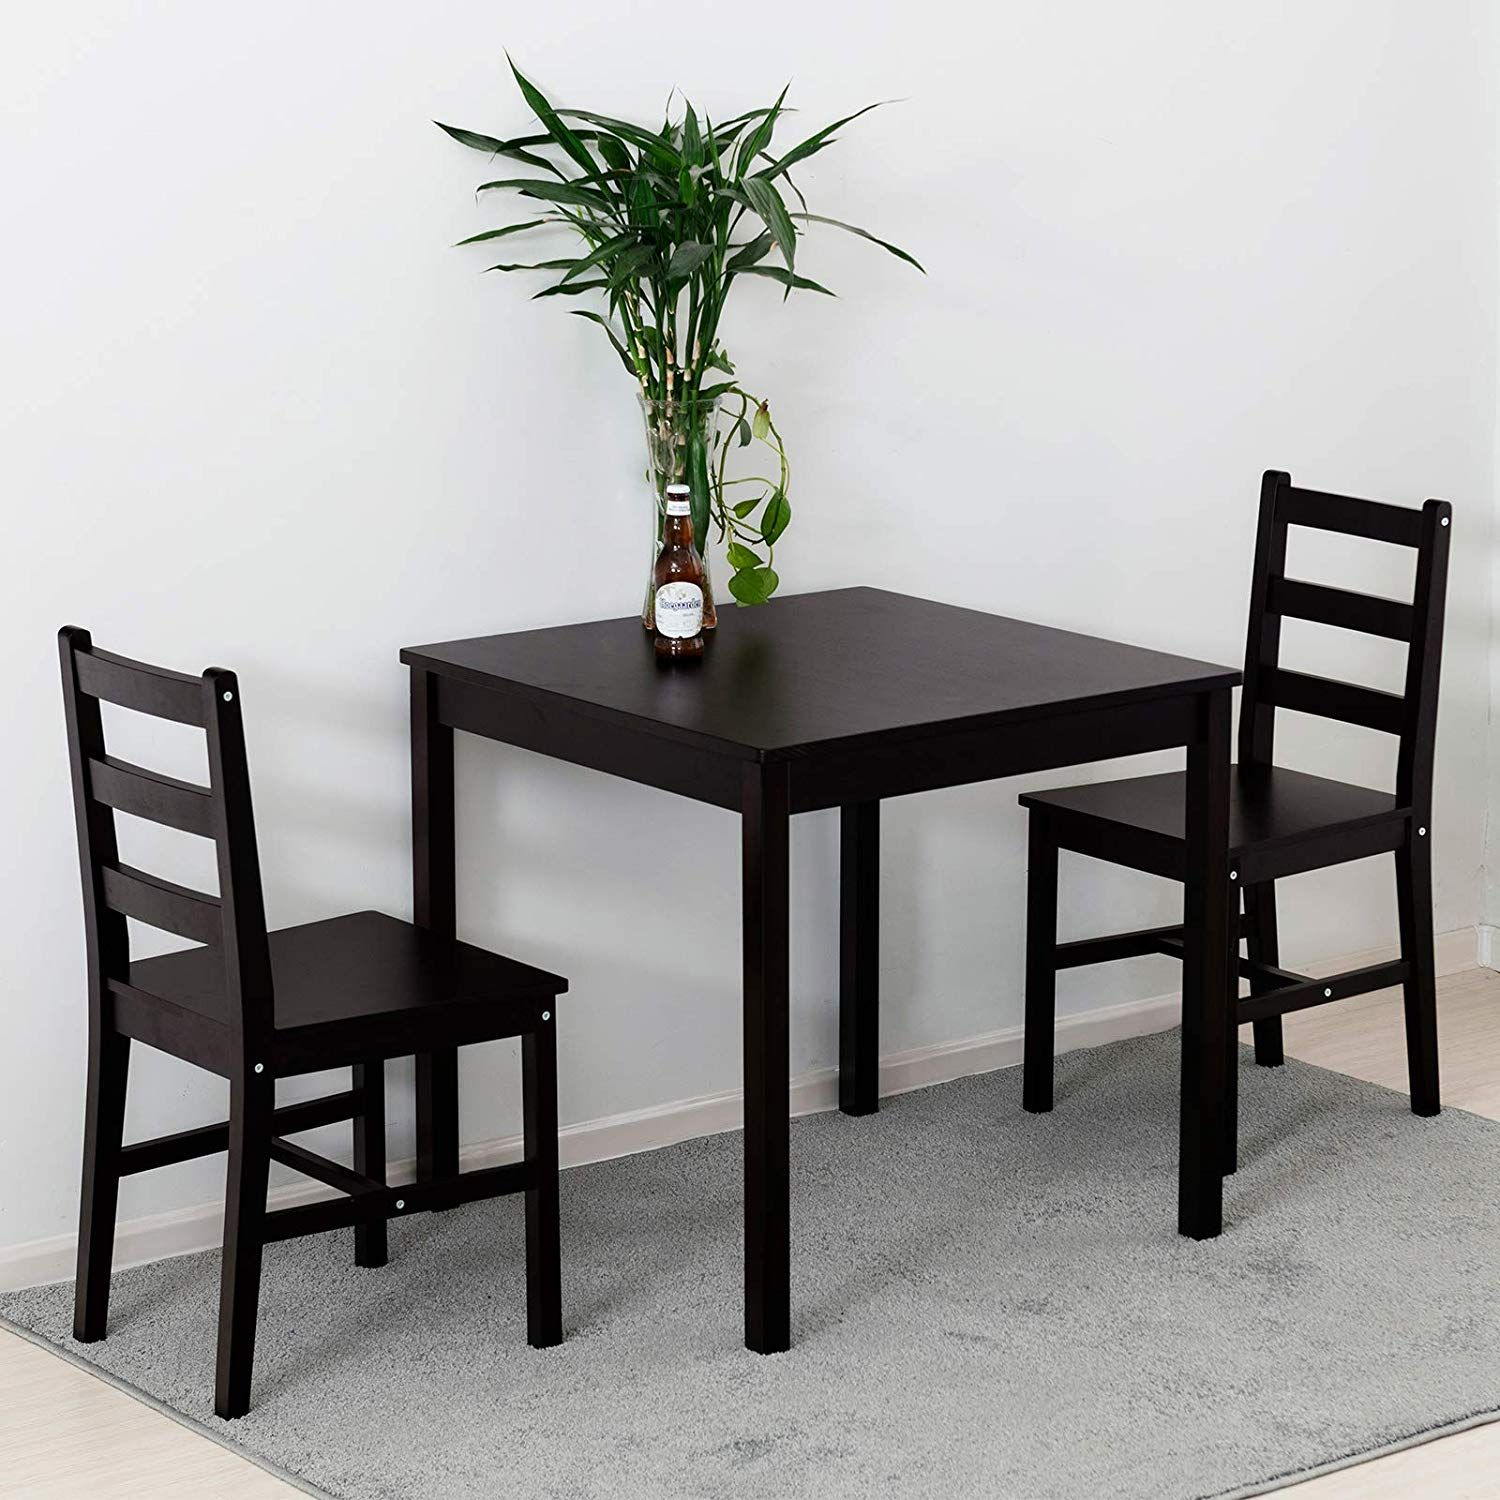 Wooden Kitchen Table Set With 2 Chairs Black Kitchen Table Set Small Living Room Loft Kitchen Table Settings Dining Sets Modern